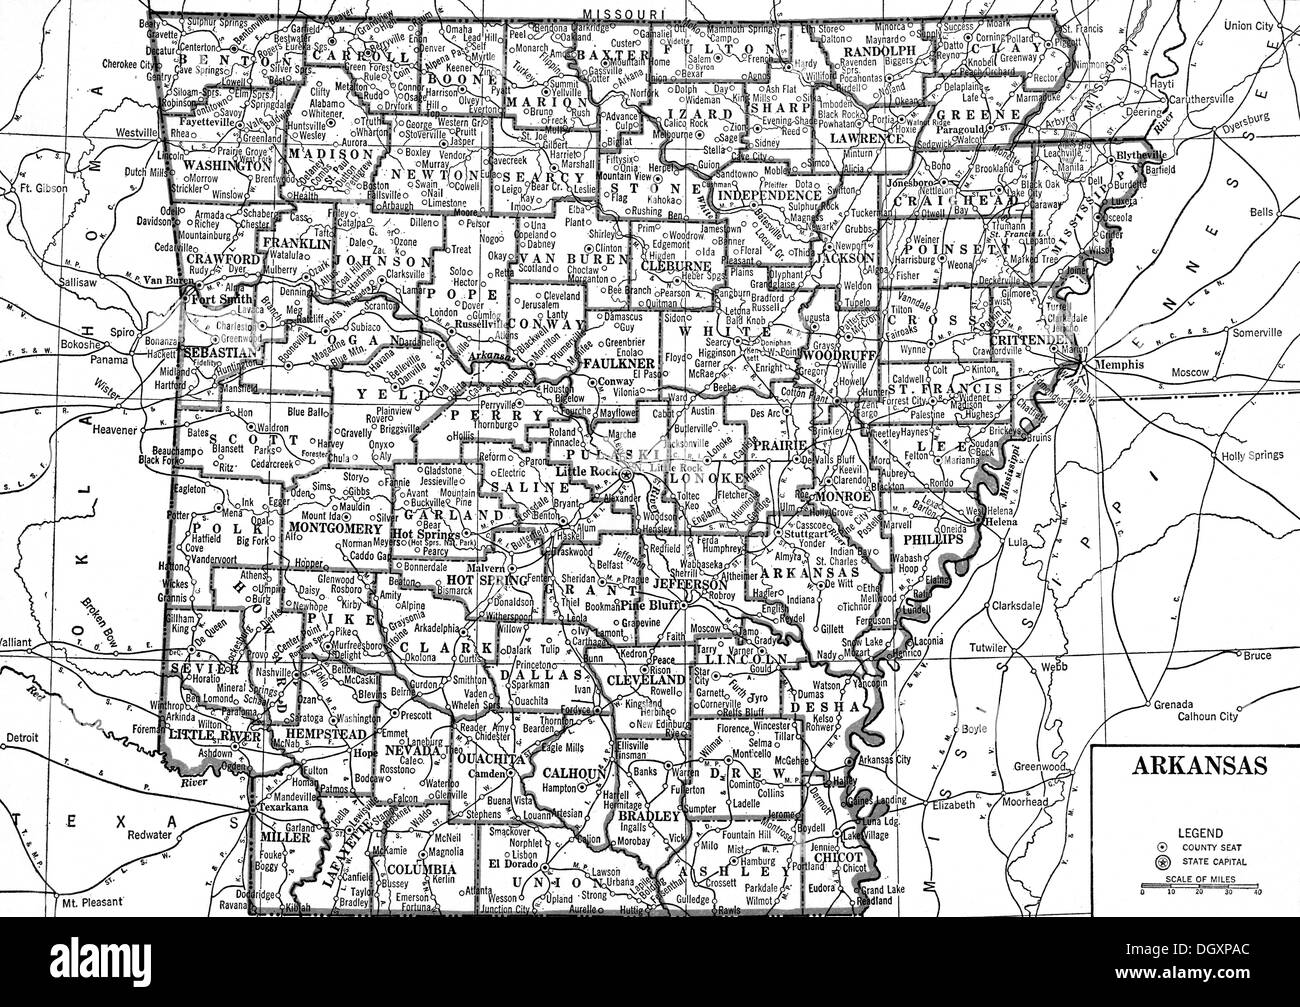 Old map of Arkansas state, 1930\'s Stock Photo: 62053892 - Alamy